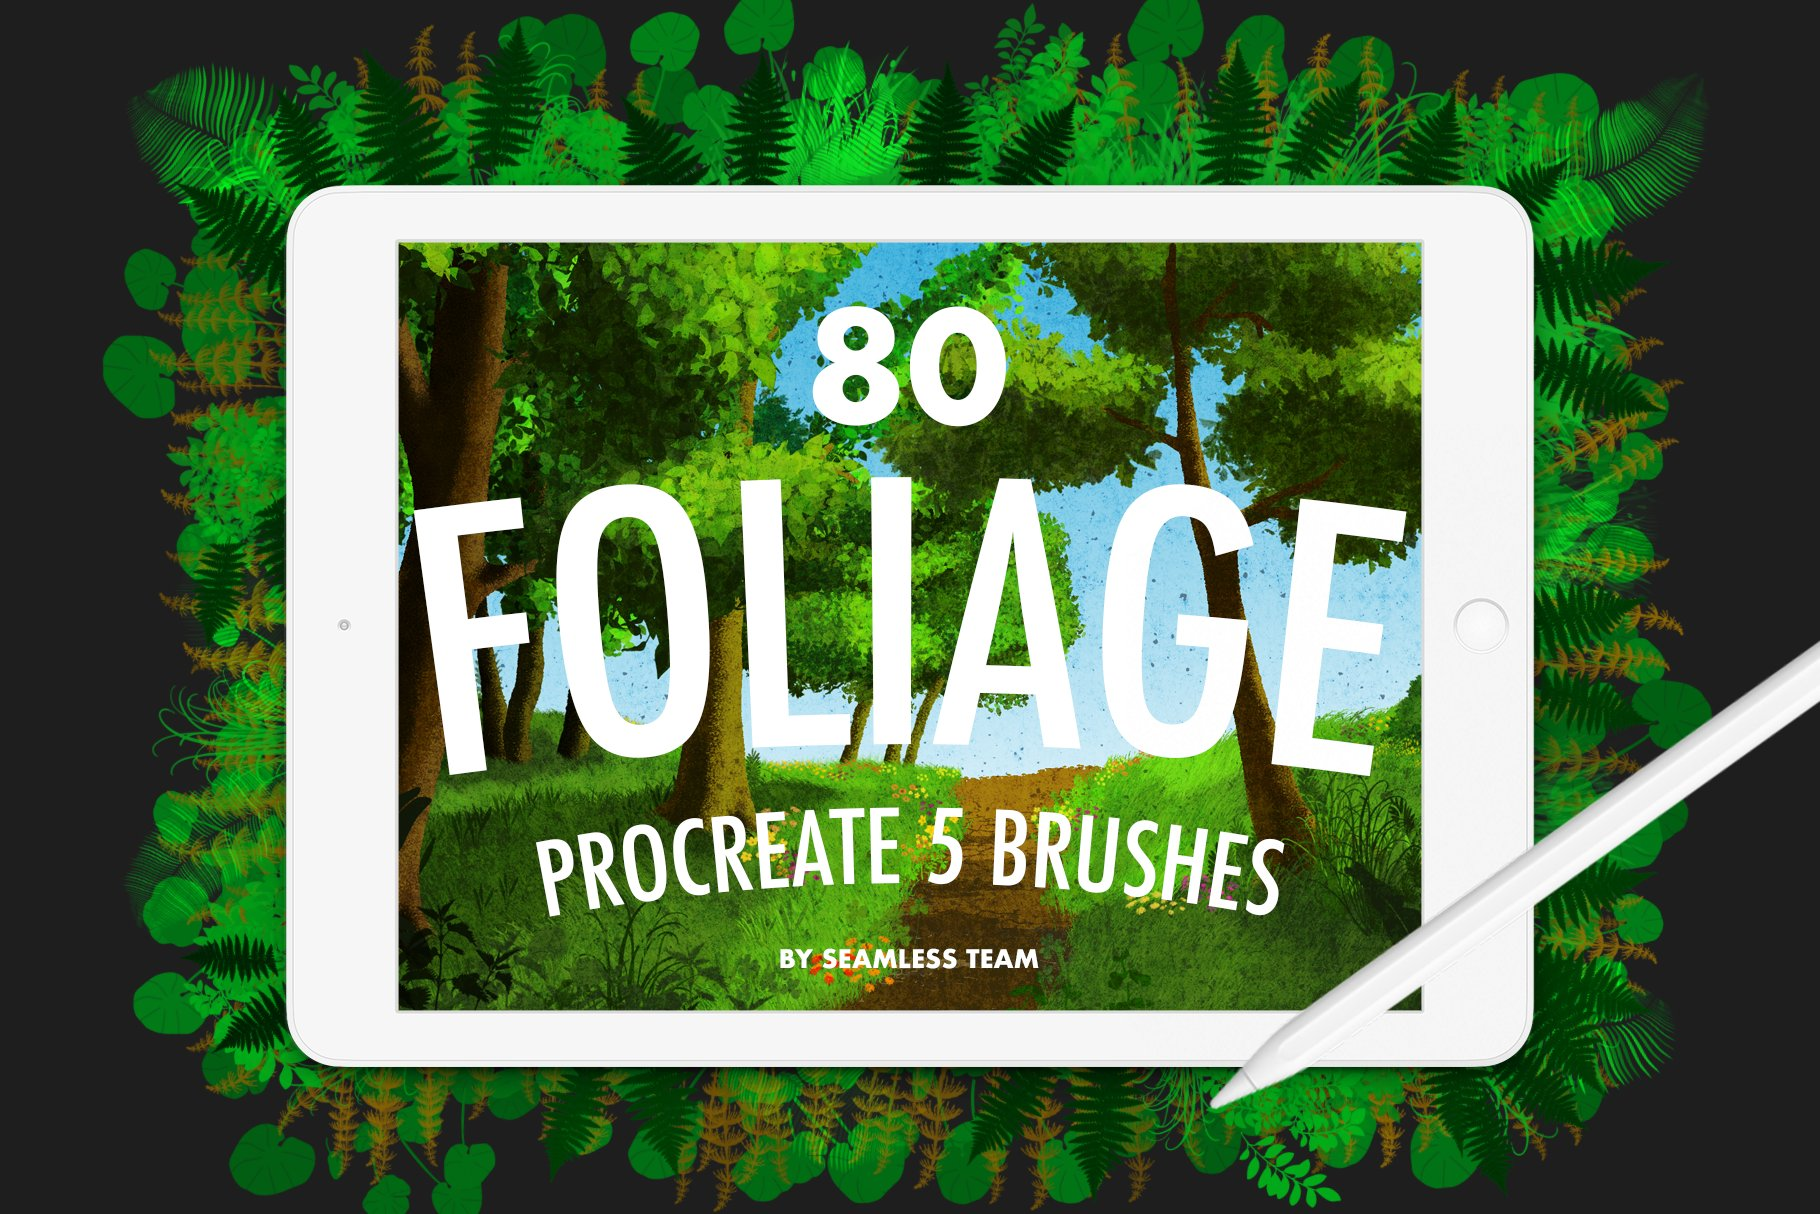 Procreate 5 - Foliage Brushes